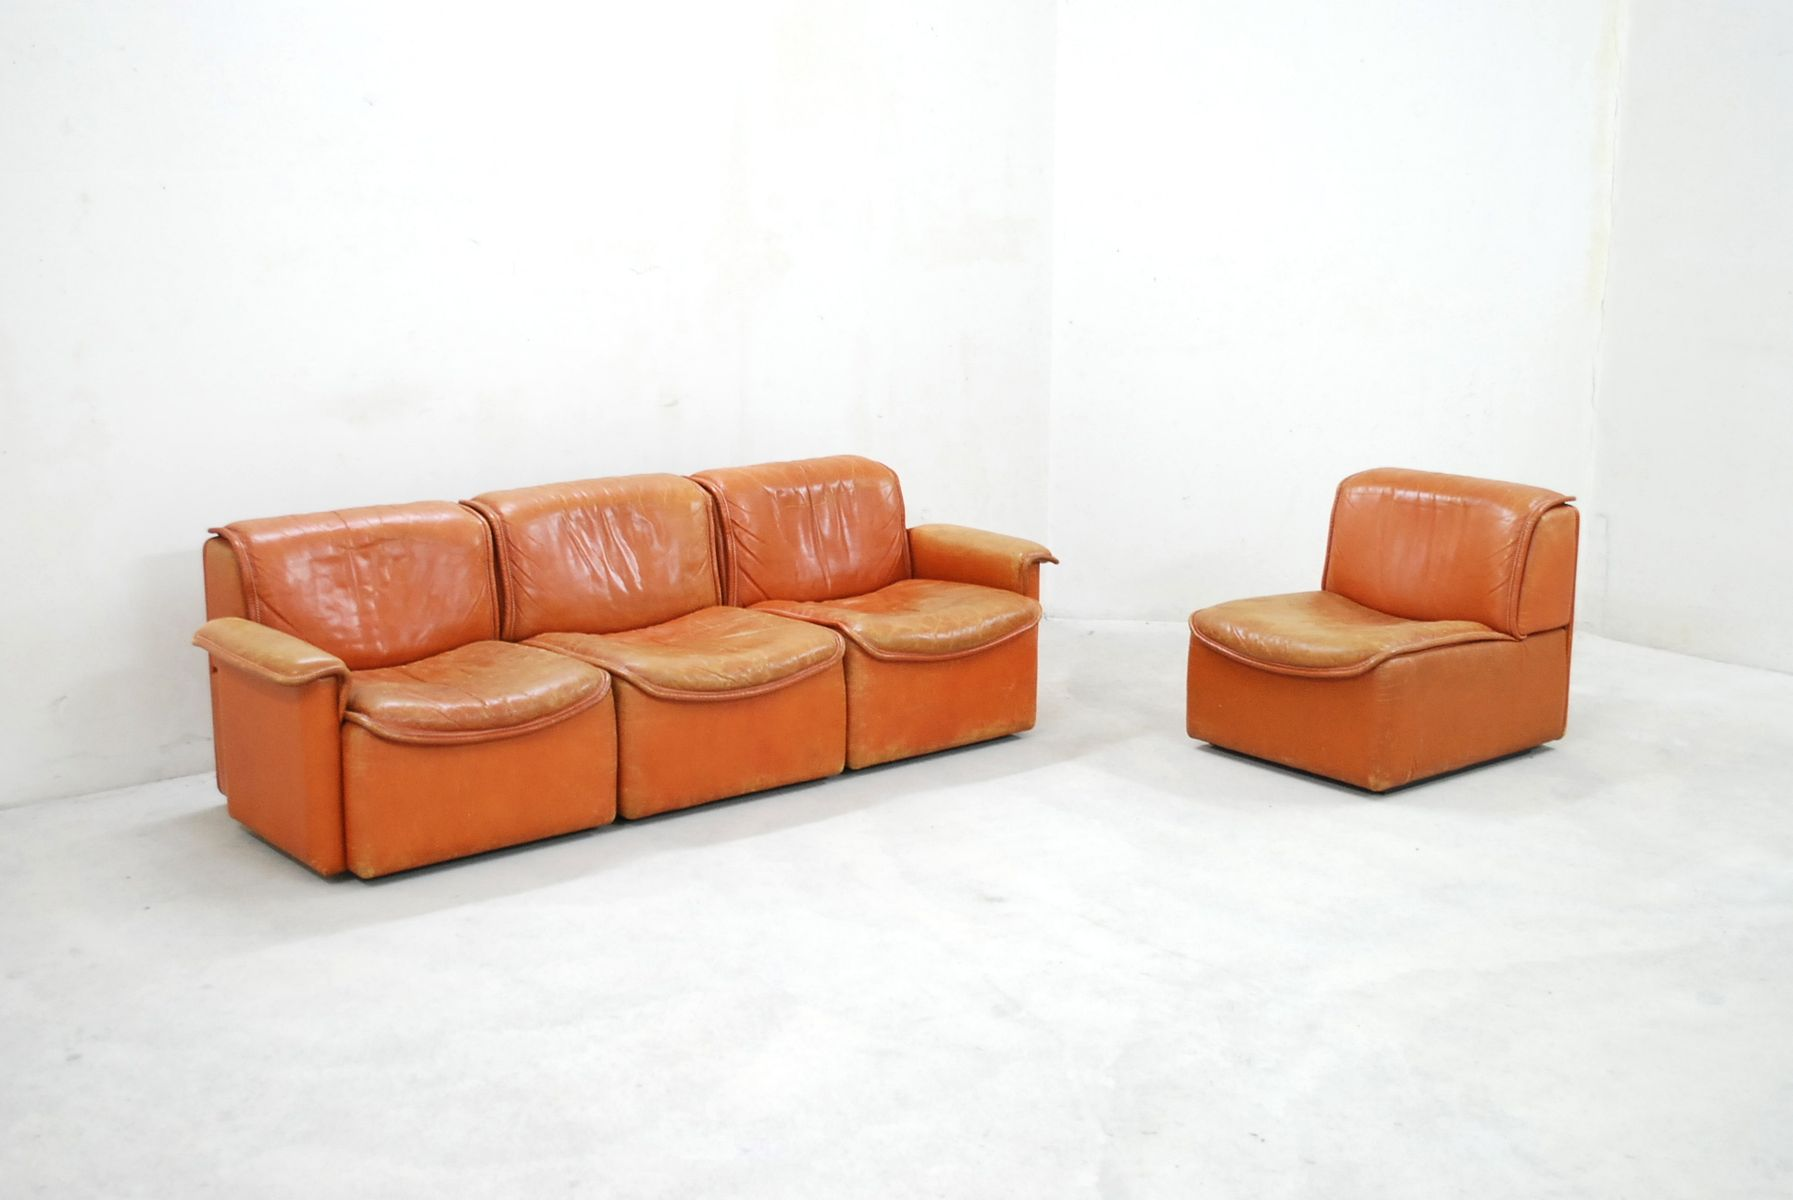 DS-12 Modular Cognac Leather Sofa From De Sede, 1980